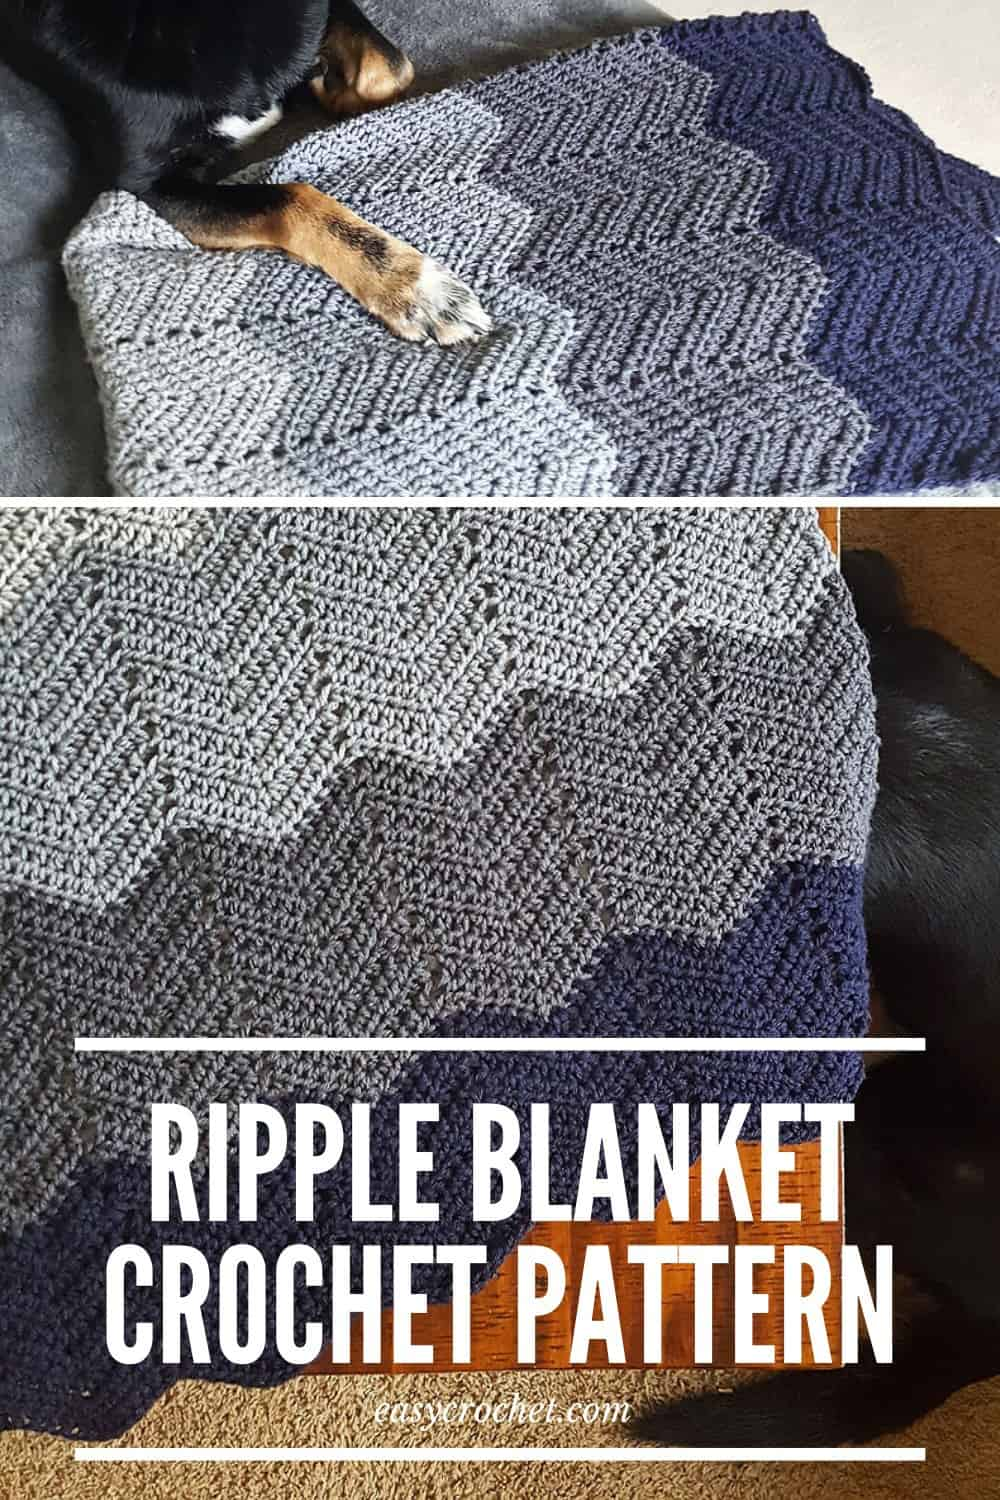 Crochet this easy ombre ripple blanket with this FREE crochet blanket pattern from Easy Crochet via @easycrochetcom